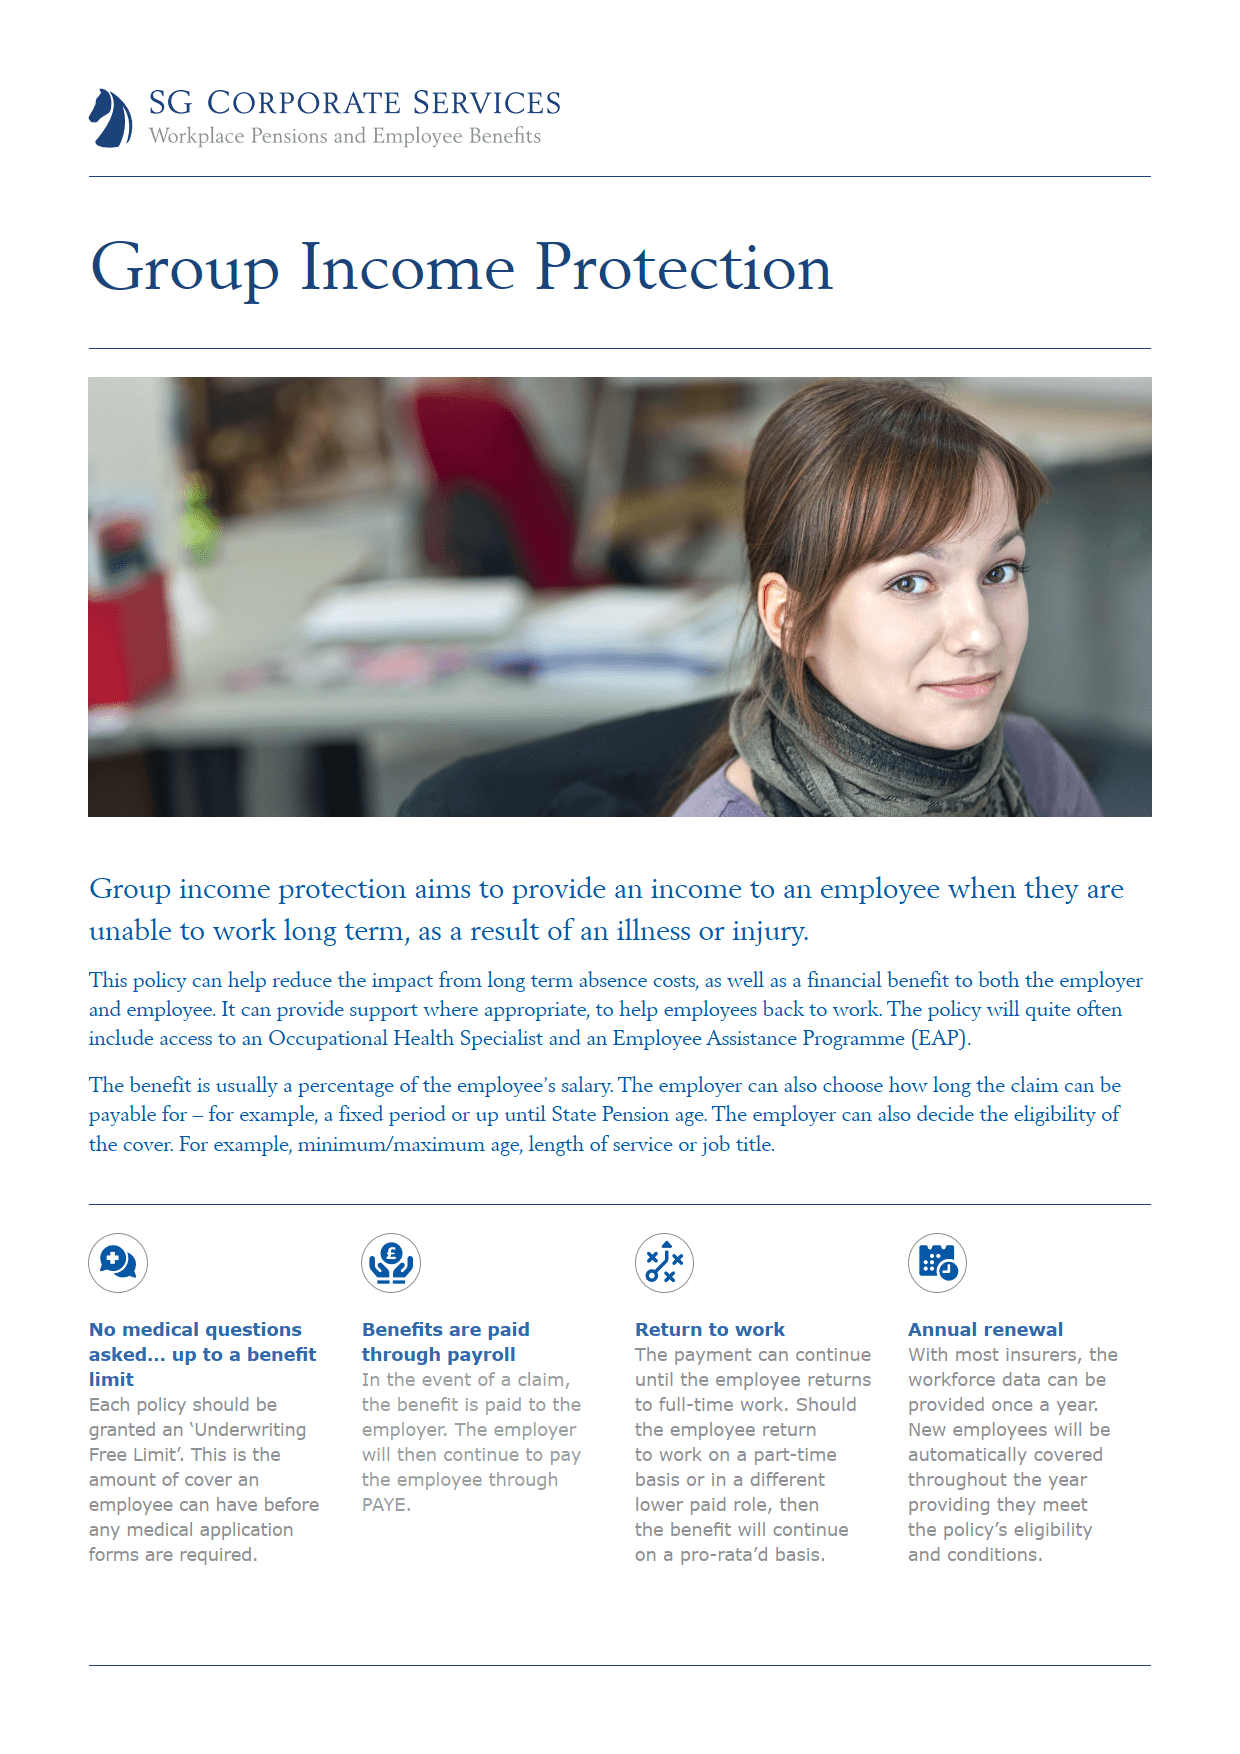 Product Guide - Group Income Protection